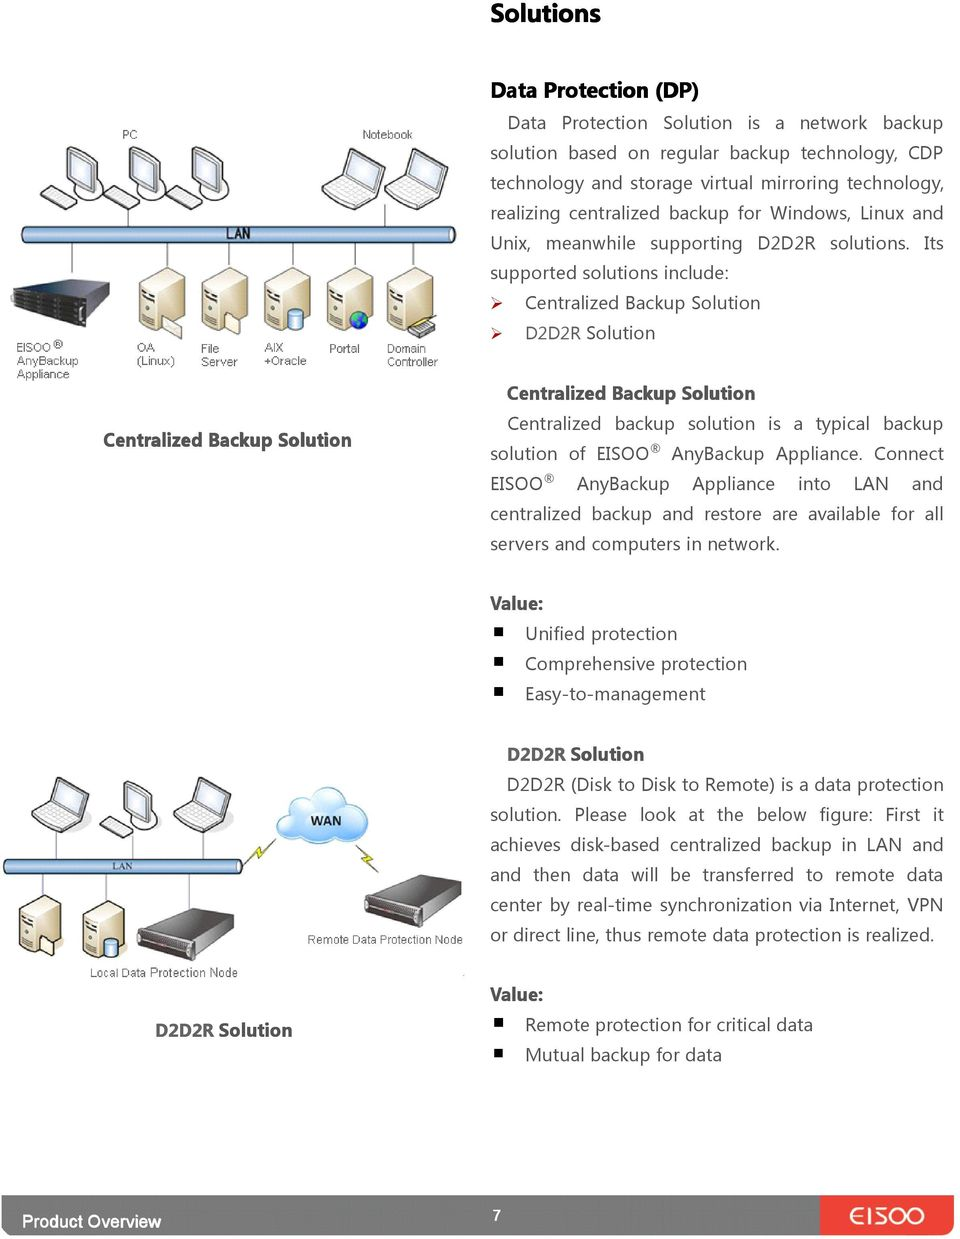 Its supported solutions include: Centralized Backup Solution D2D2R Solution Centralized Backup Solution Centralized Backup Solution Centralized backup solution is a typical backup solution of EISOO